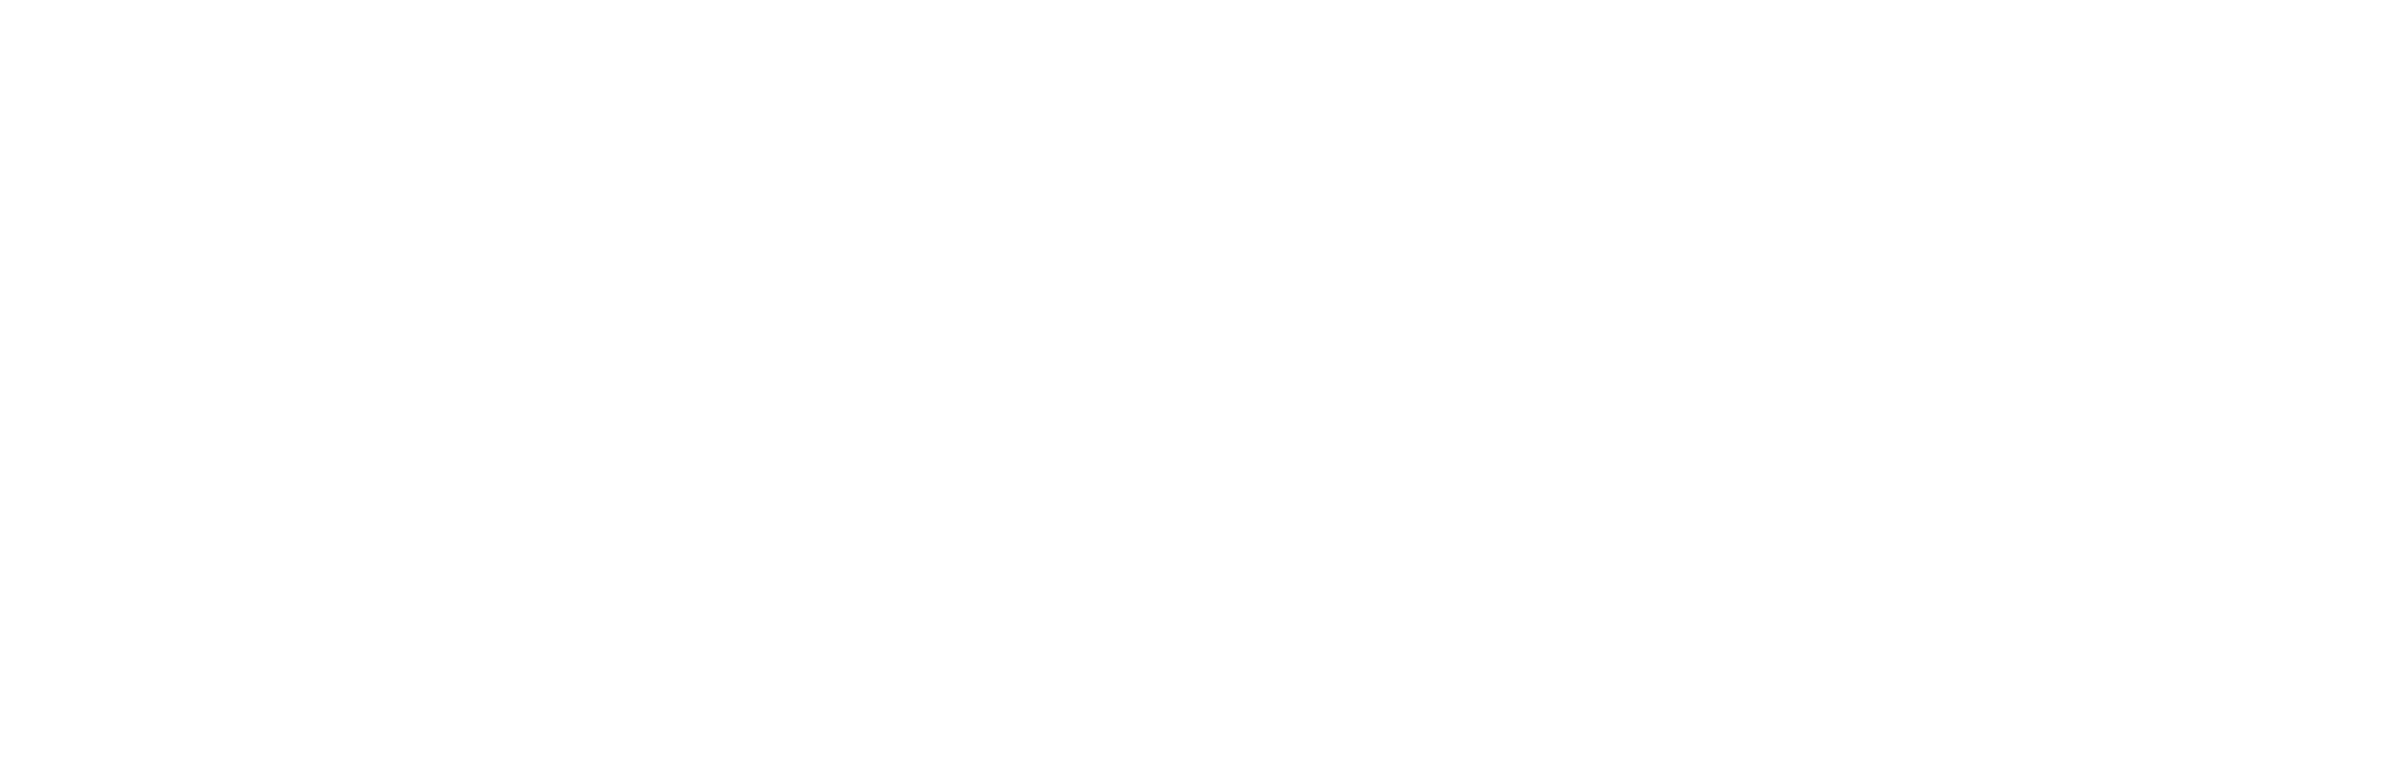 Reservation Info